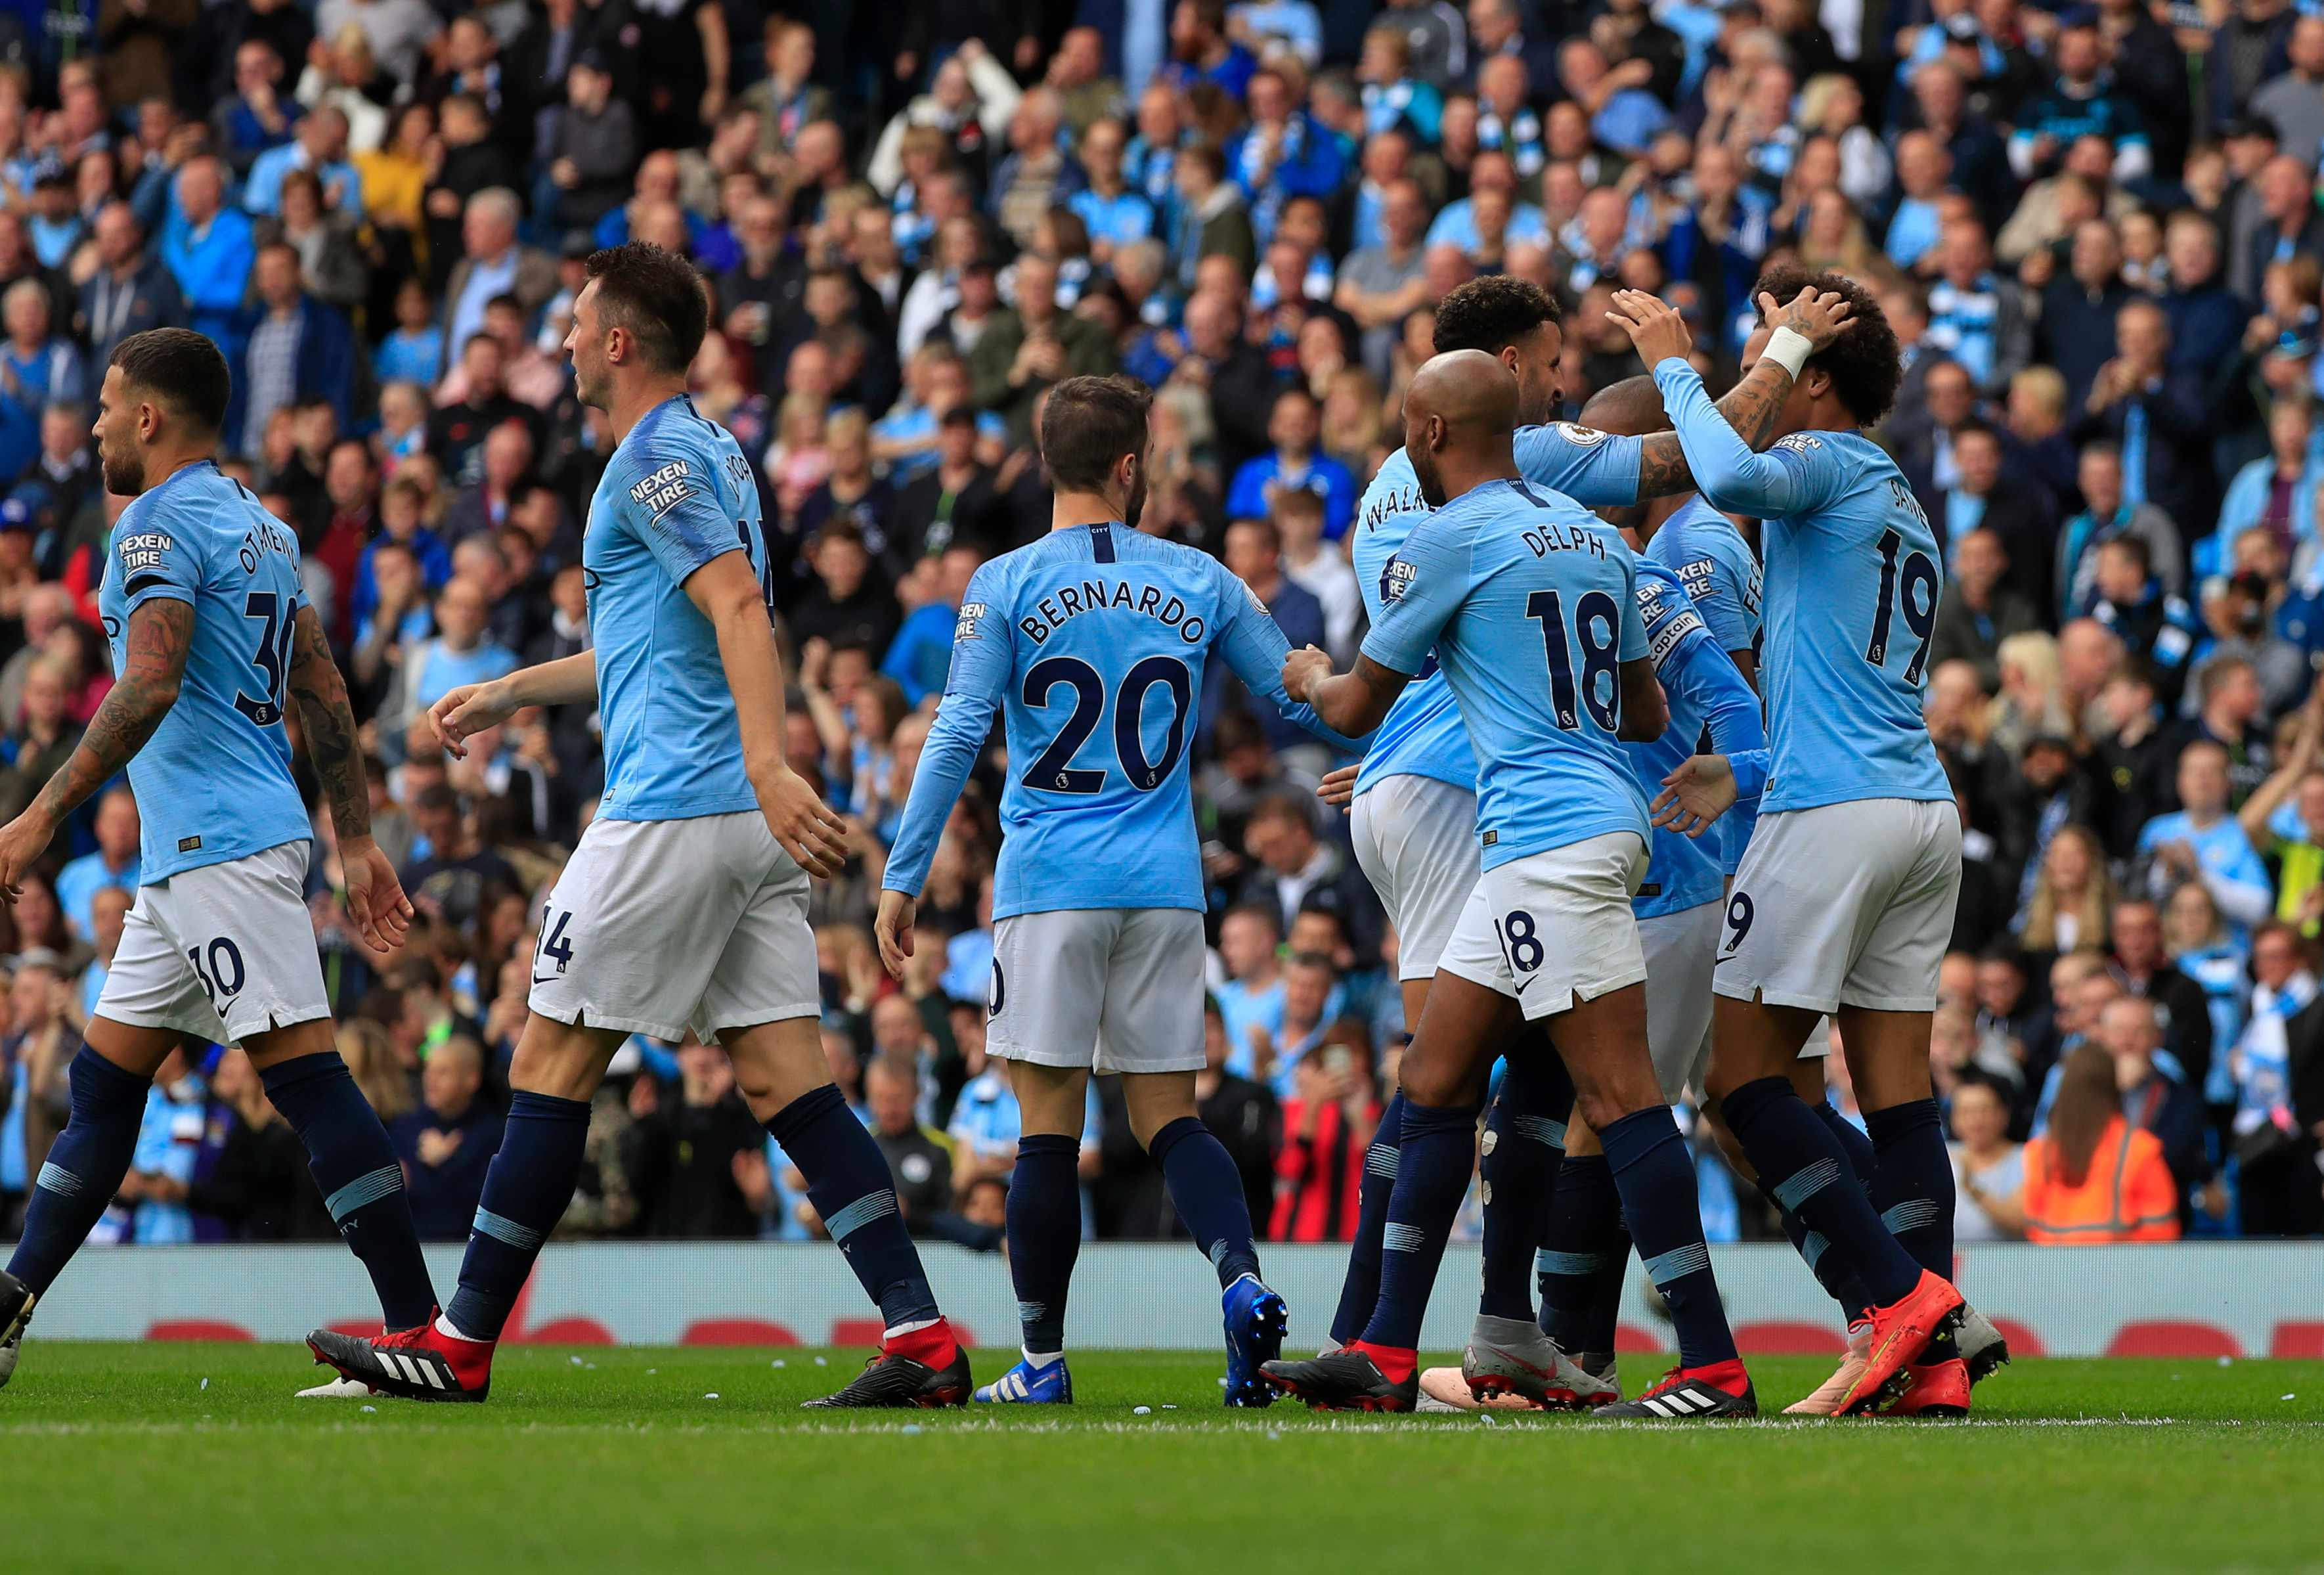 15th September 2018, Etihad Stadium, Manchester, England; EPL Premier League football, Manchester City versus Fulham; City players congratulate Leroy Sane on scoring the opening goal in the 2nd minute, 1-0 to City (photo by Conor Molloy/Action Plus via Getty Images)